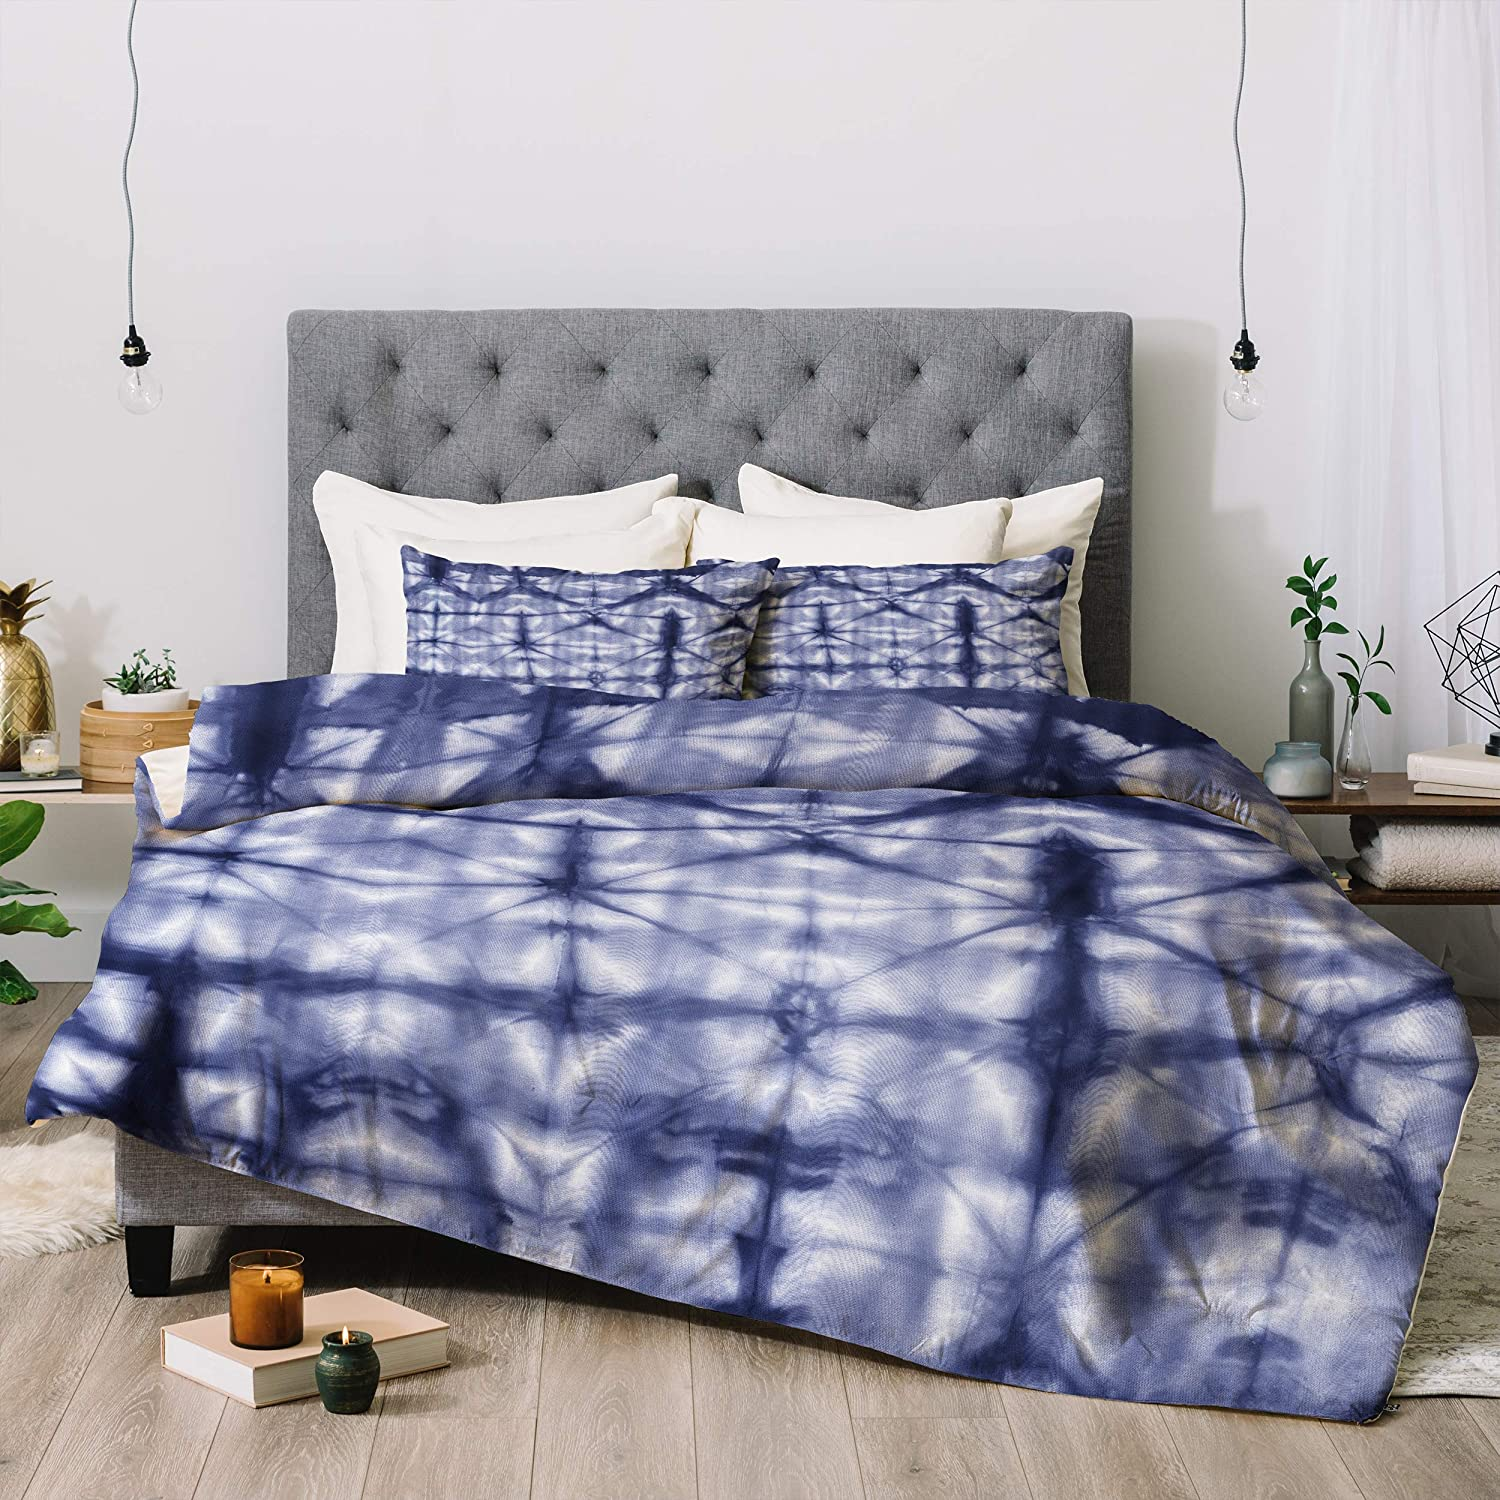 Deny Designs Amy Sia Tie Dye 2 Navy Comforter Set with Pillow Shams, King, Blue